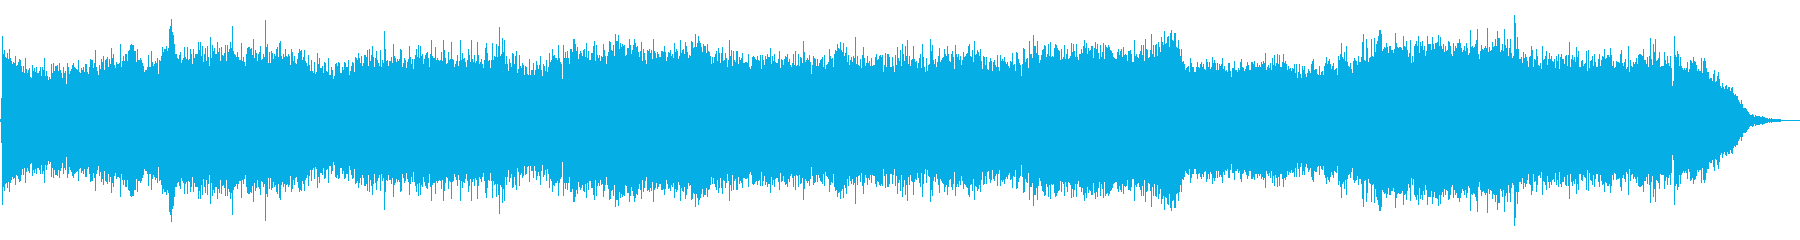 Cyber War's reproduced waveform